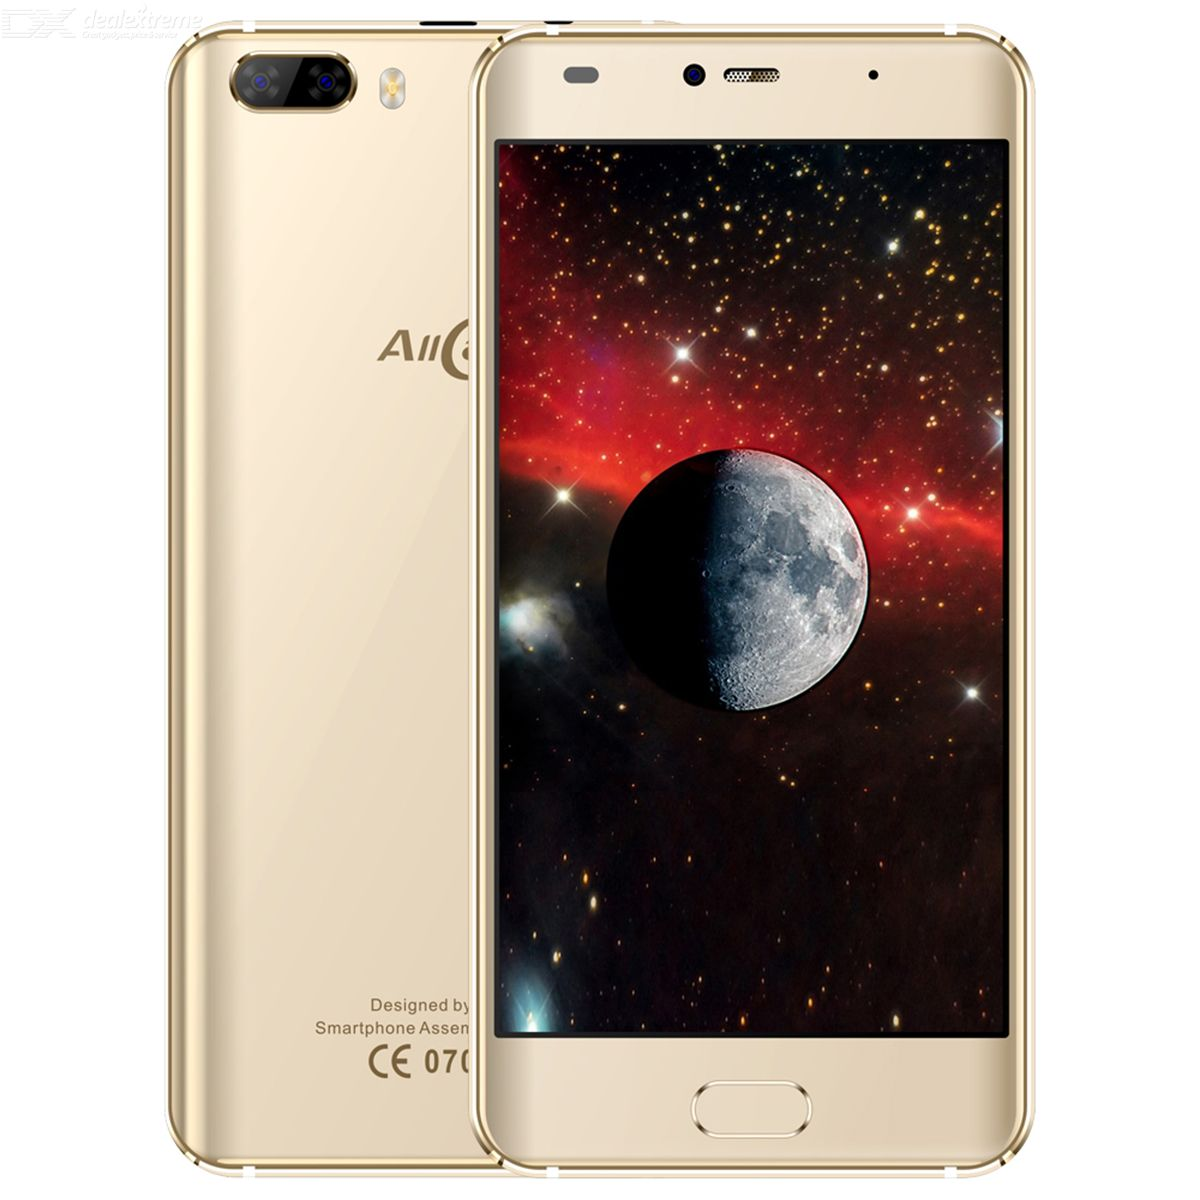 Allcall-Rio-50-Inches-IPS-Rear-Cams-Android-70-Smartphone